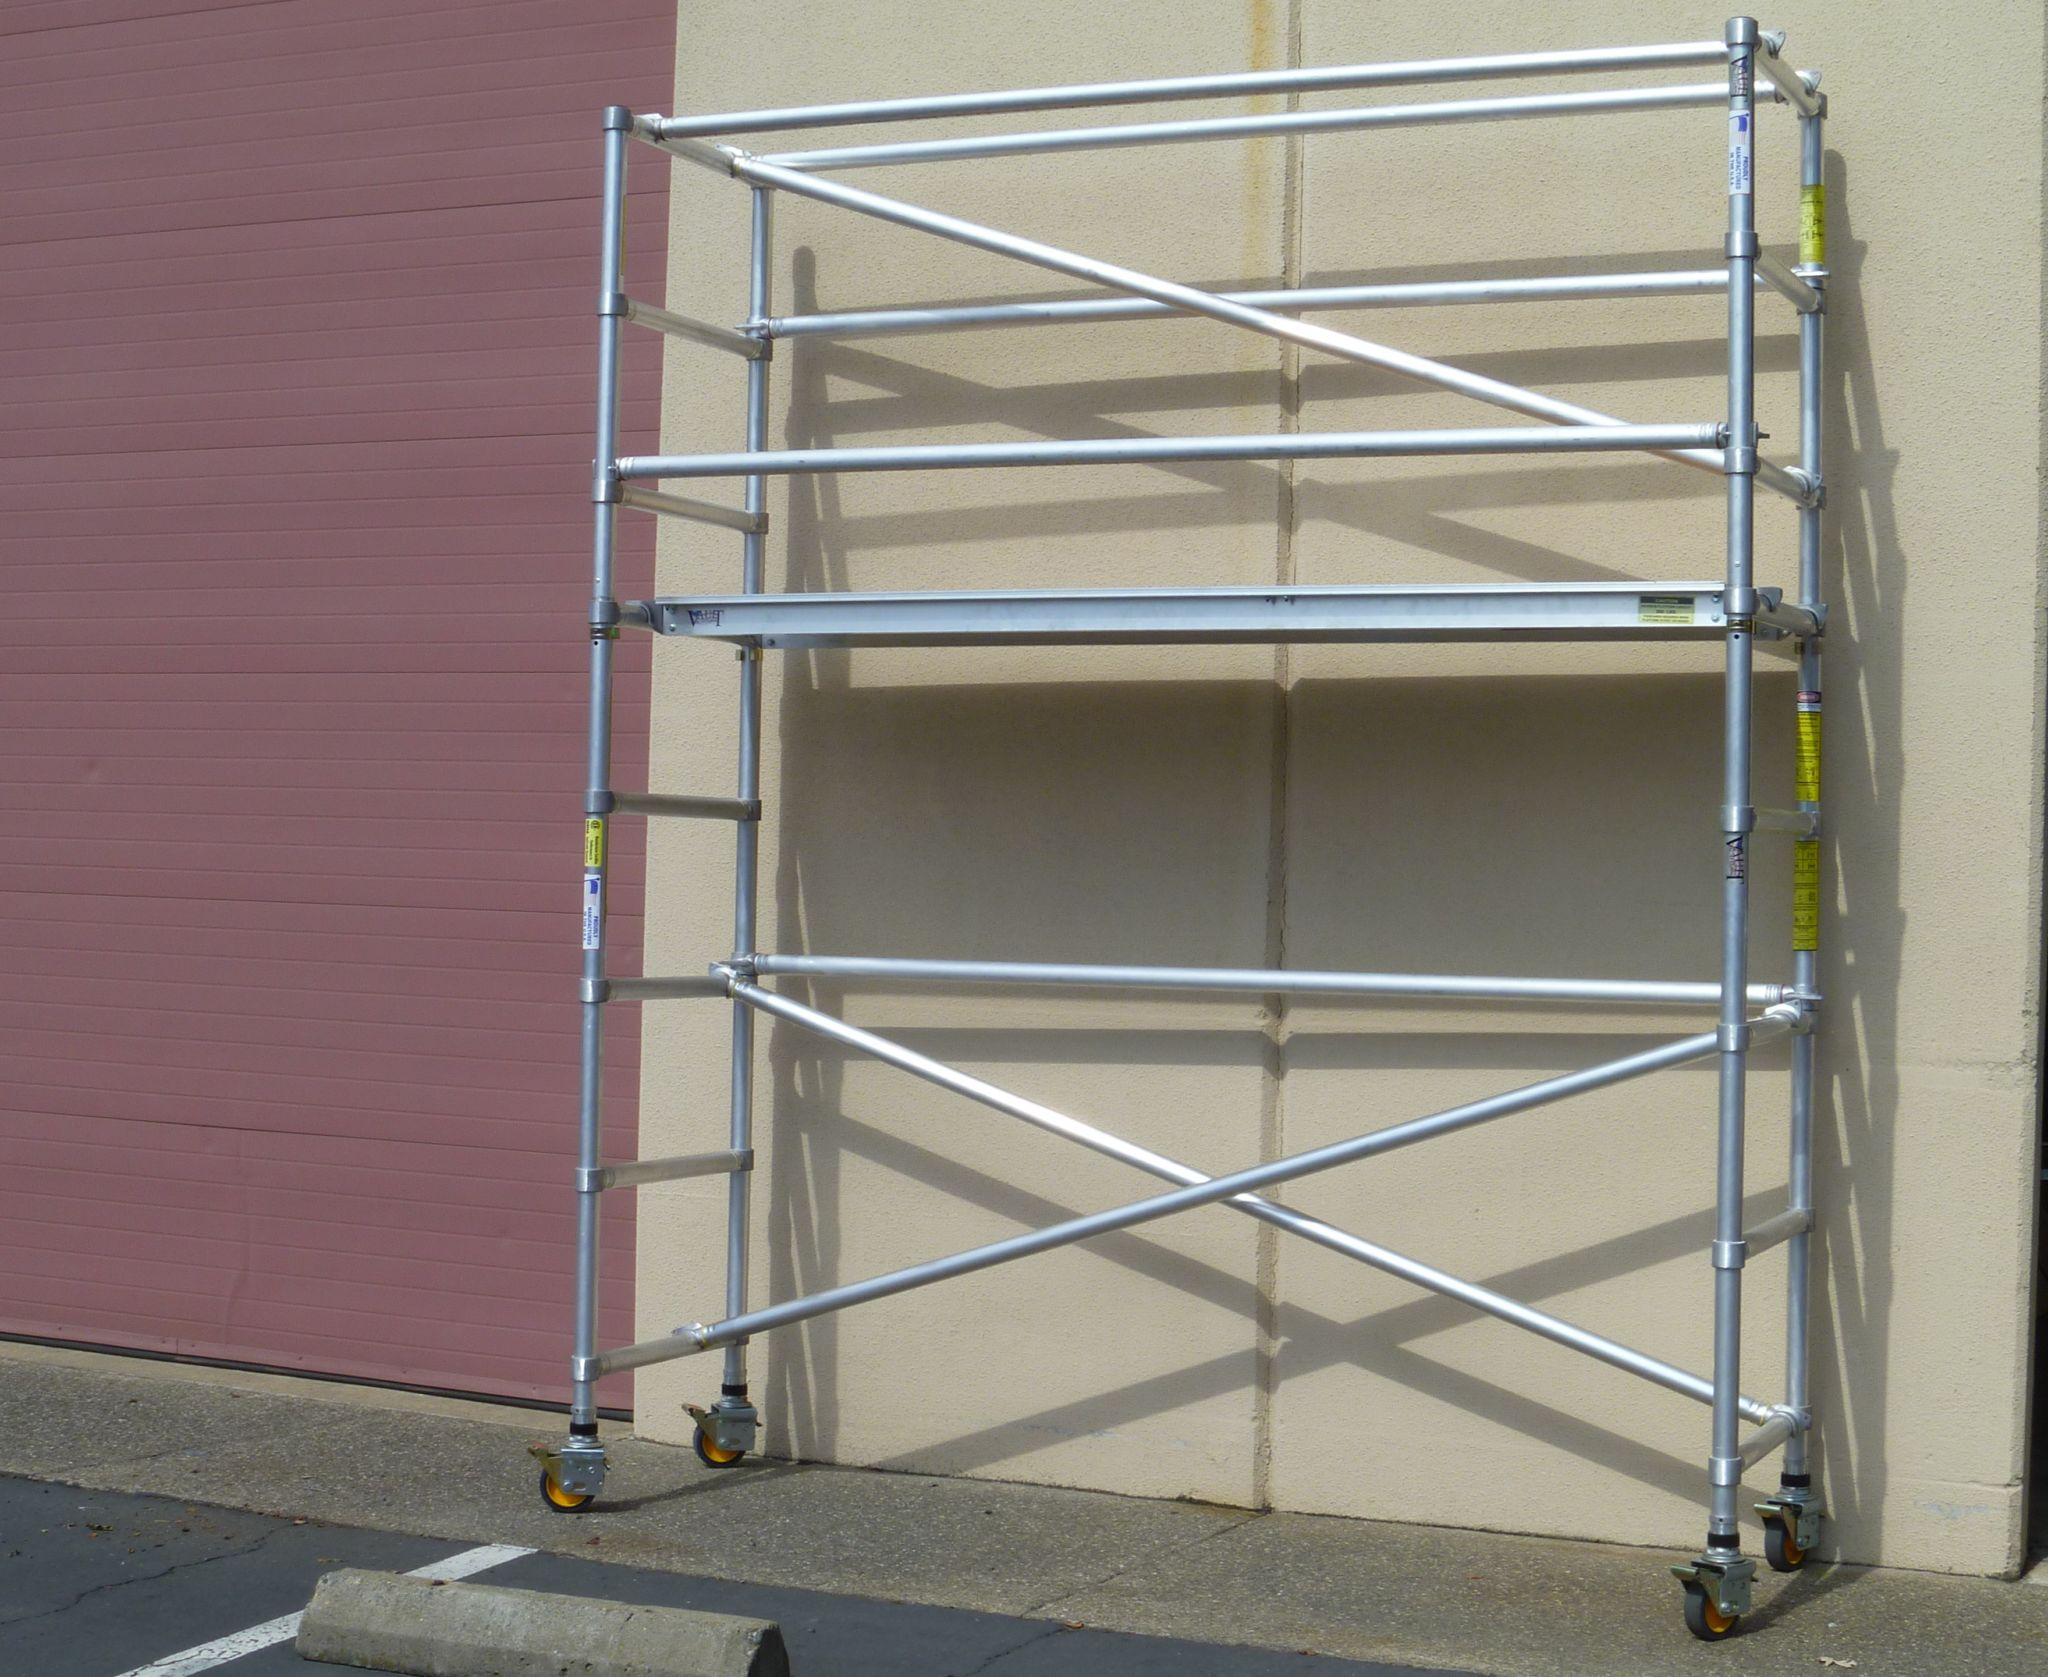 Aluminum Scaffold, Aluminum Scaffold Sacramento, Aluminum Scaffolding for sale, Aluminum Scaffolding Sacramento, Aluminum Scaffolding San Francisco, Aluminum Scaffolding San Jose, Aluminum Scaffolding Bay Area, Aluminum Scaffolding Oakland, Aluminum Scaffolding for Sale Sacramento